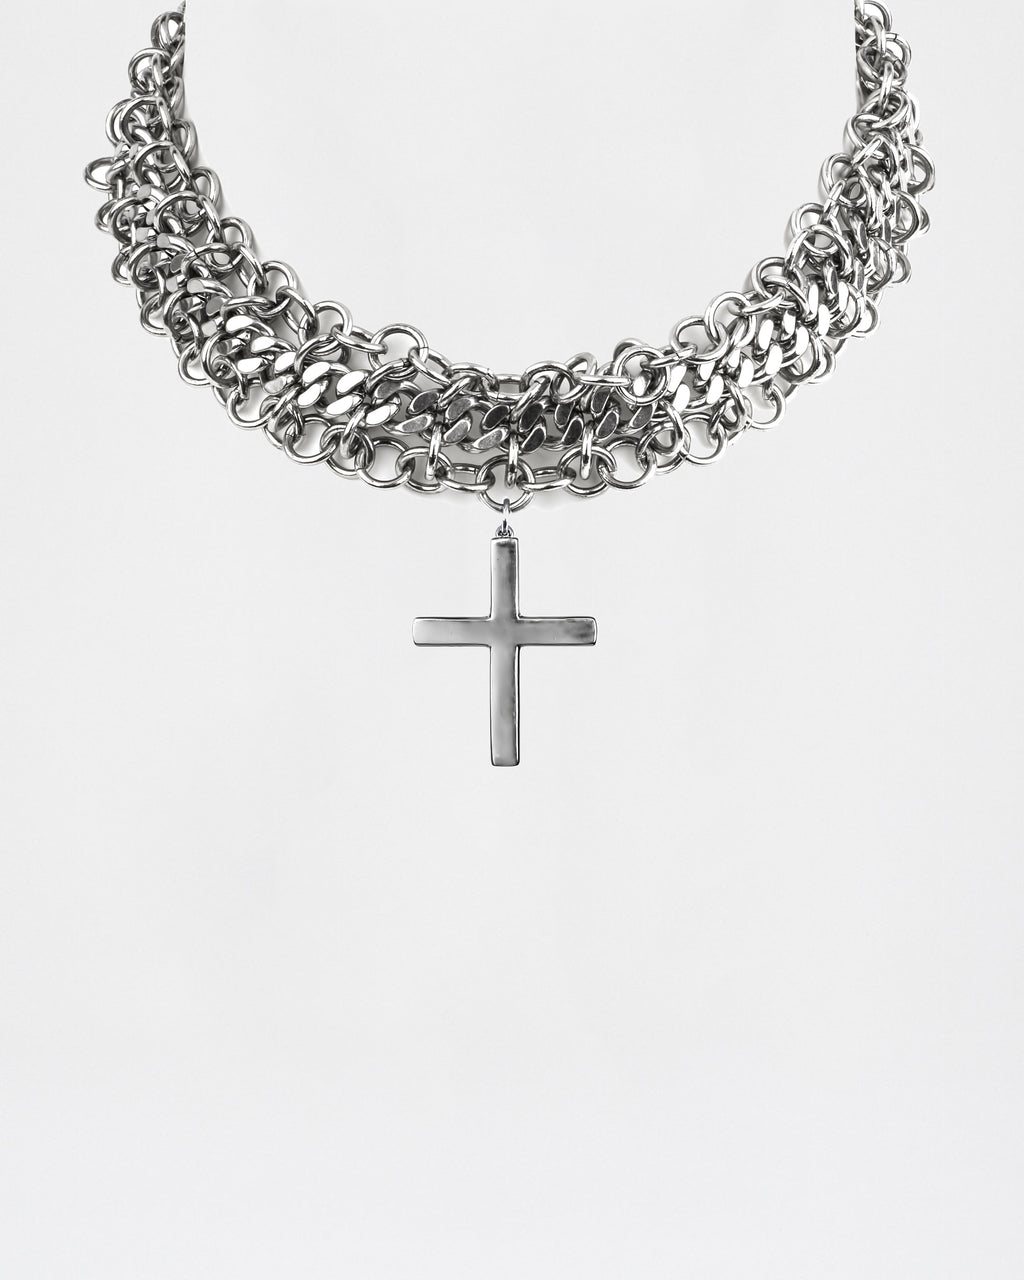 NM01561 - Cross Choker Necklace - accessories - jewelry - This chunky cross choker is a statement piece. It was also featured on the Fall 2019 runway show.